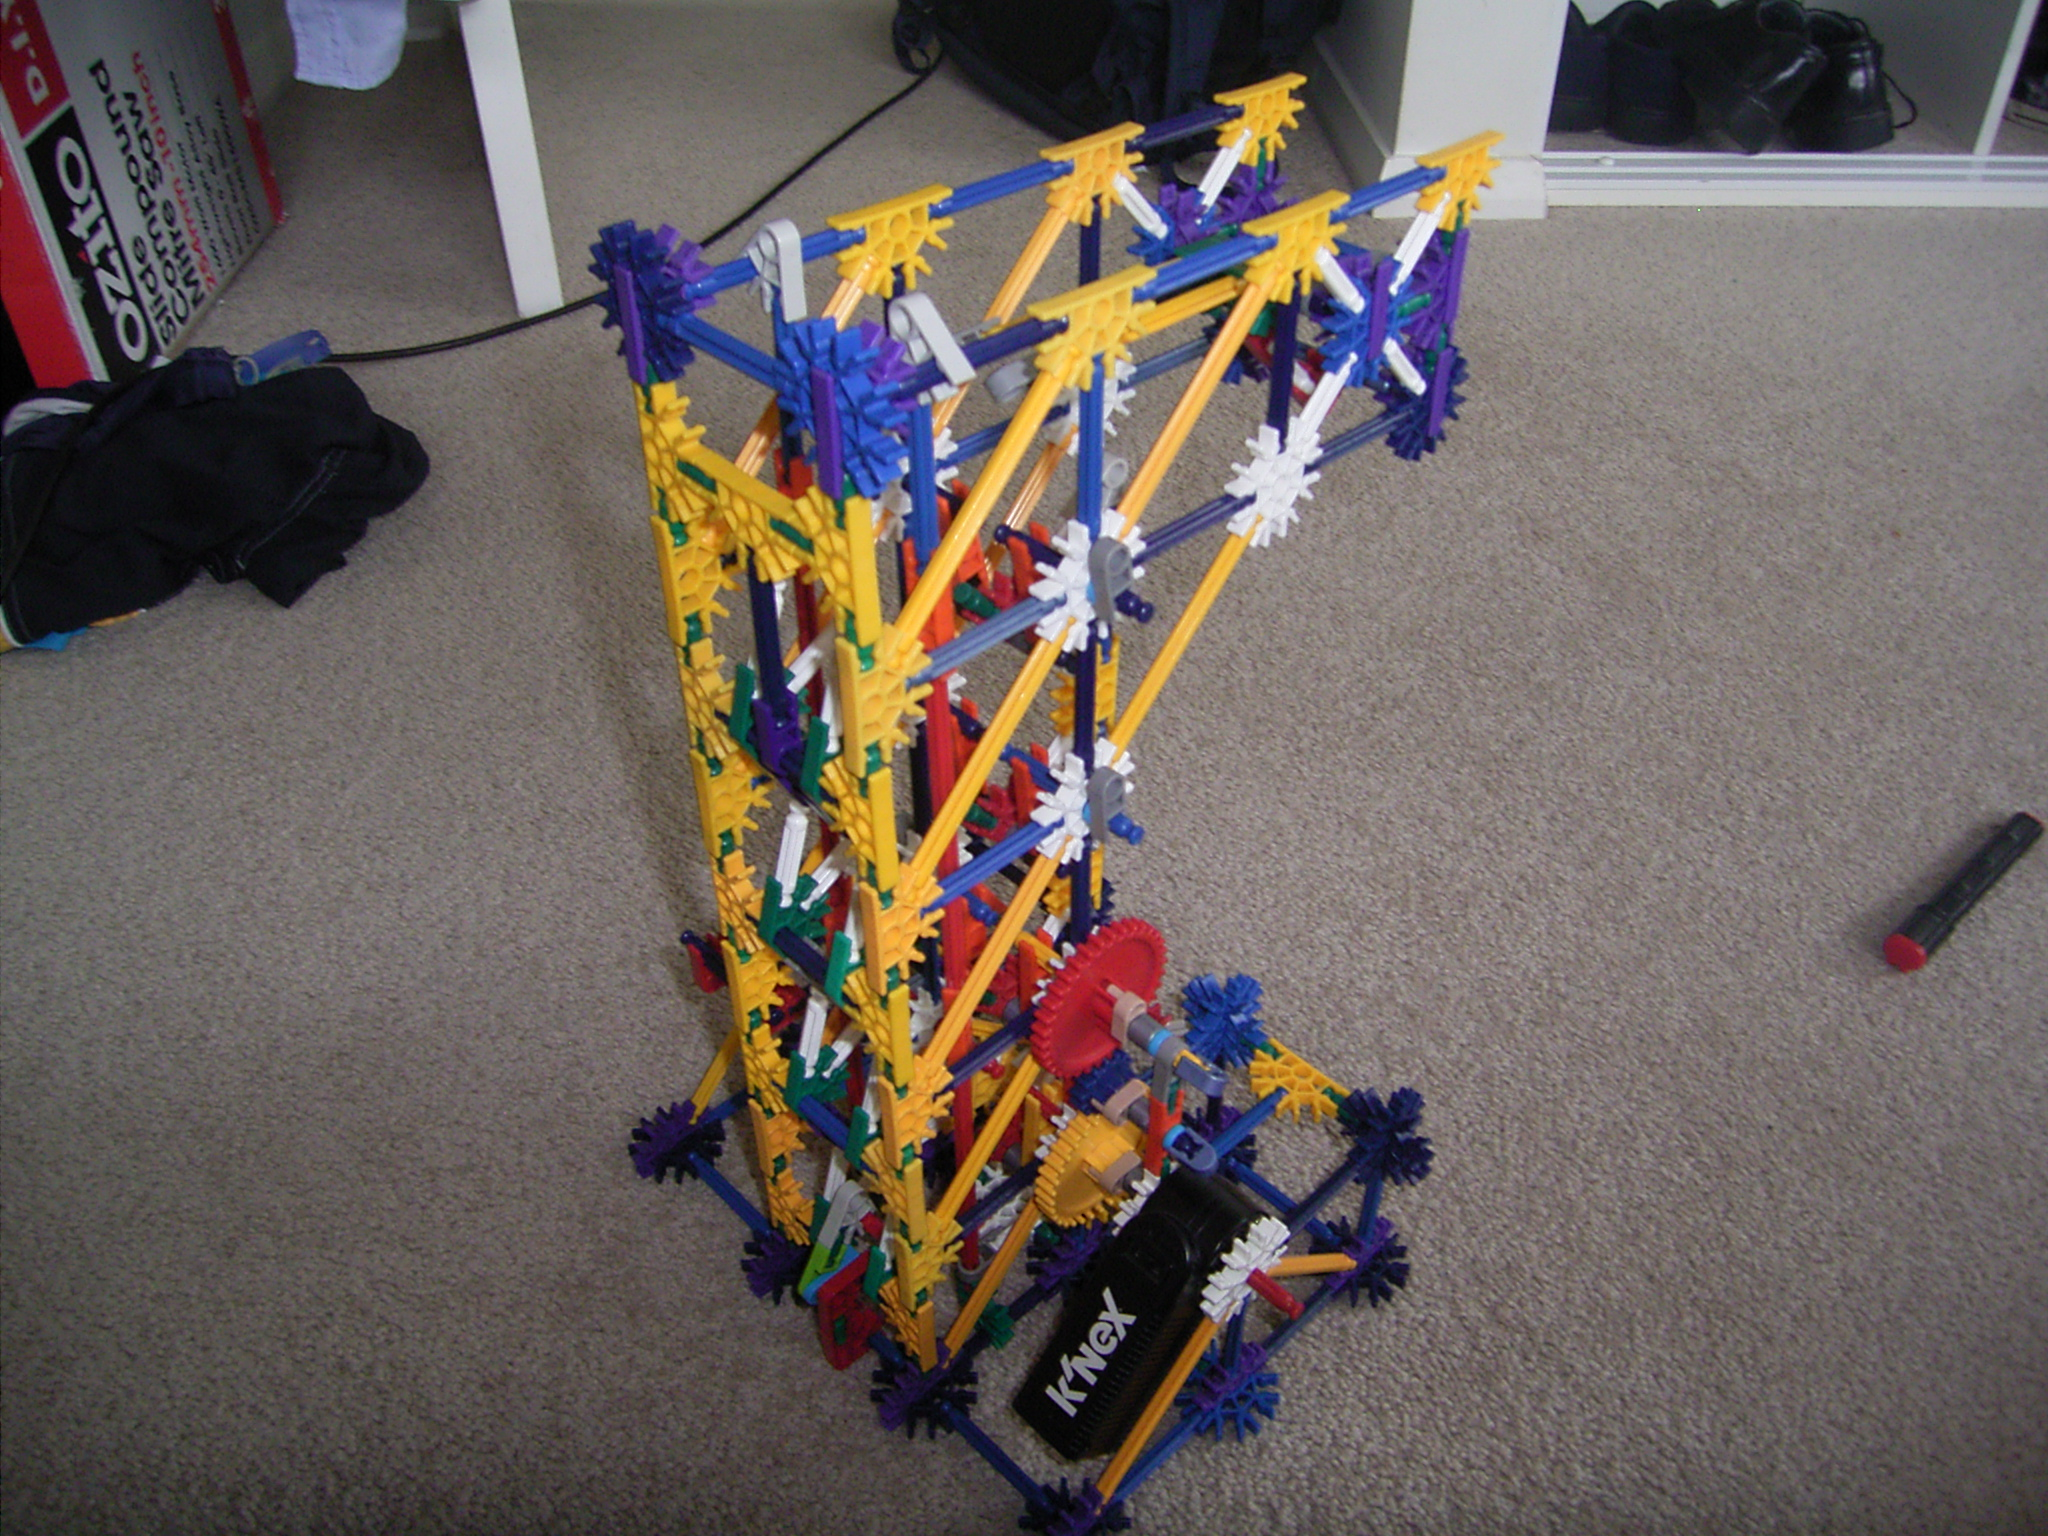 Picture of Knex 'Puzzle' Ball Lift